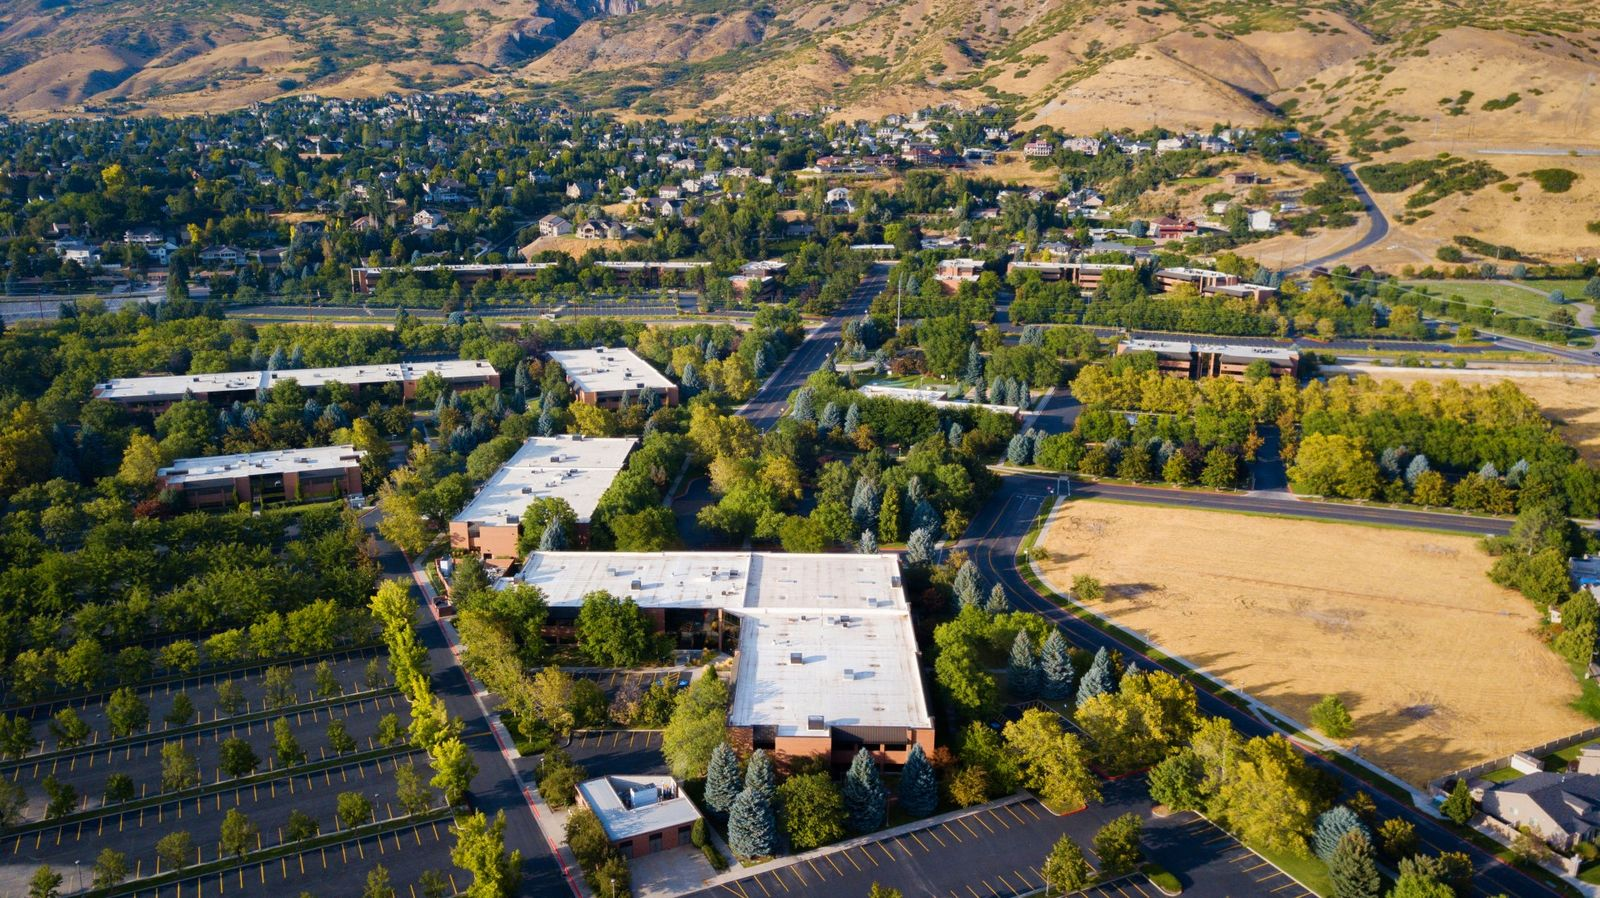 A Utah office park that was built by the company credited with launching the state's tech industry has undergone an $8.6 million revitalization project. (Photo courtesy of CanyonPark.com)